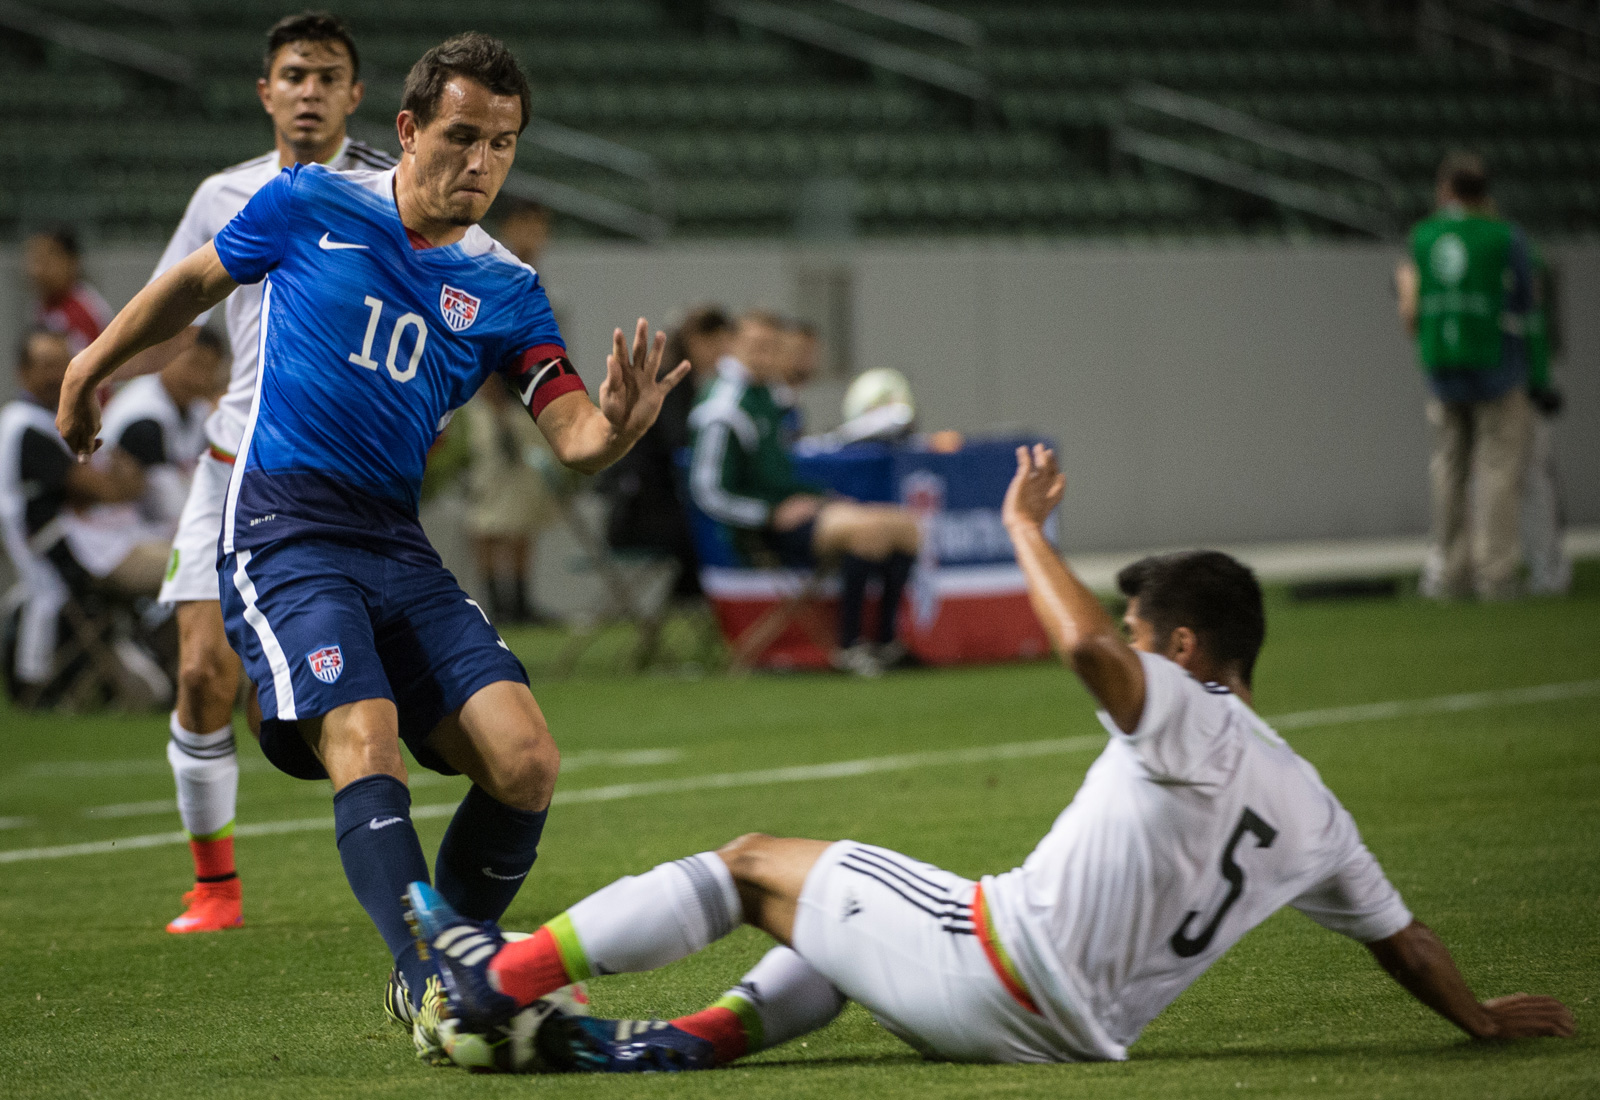 Real Salt Lake's Luis Gil captains the USA to a 3-0 win over Mexico at StubHub Center in Olympic qualifying preparation for both CONCACAF favorites.